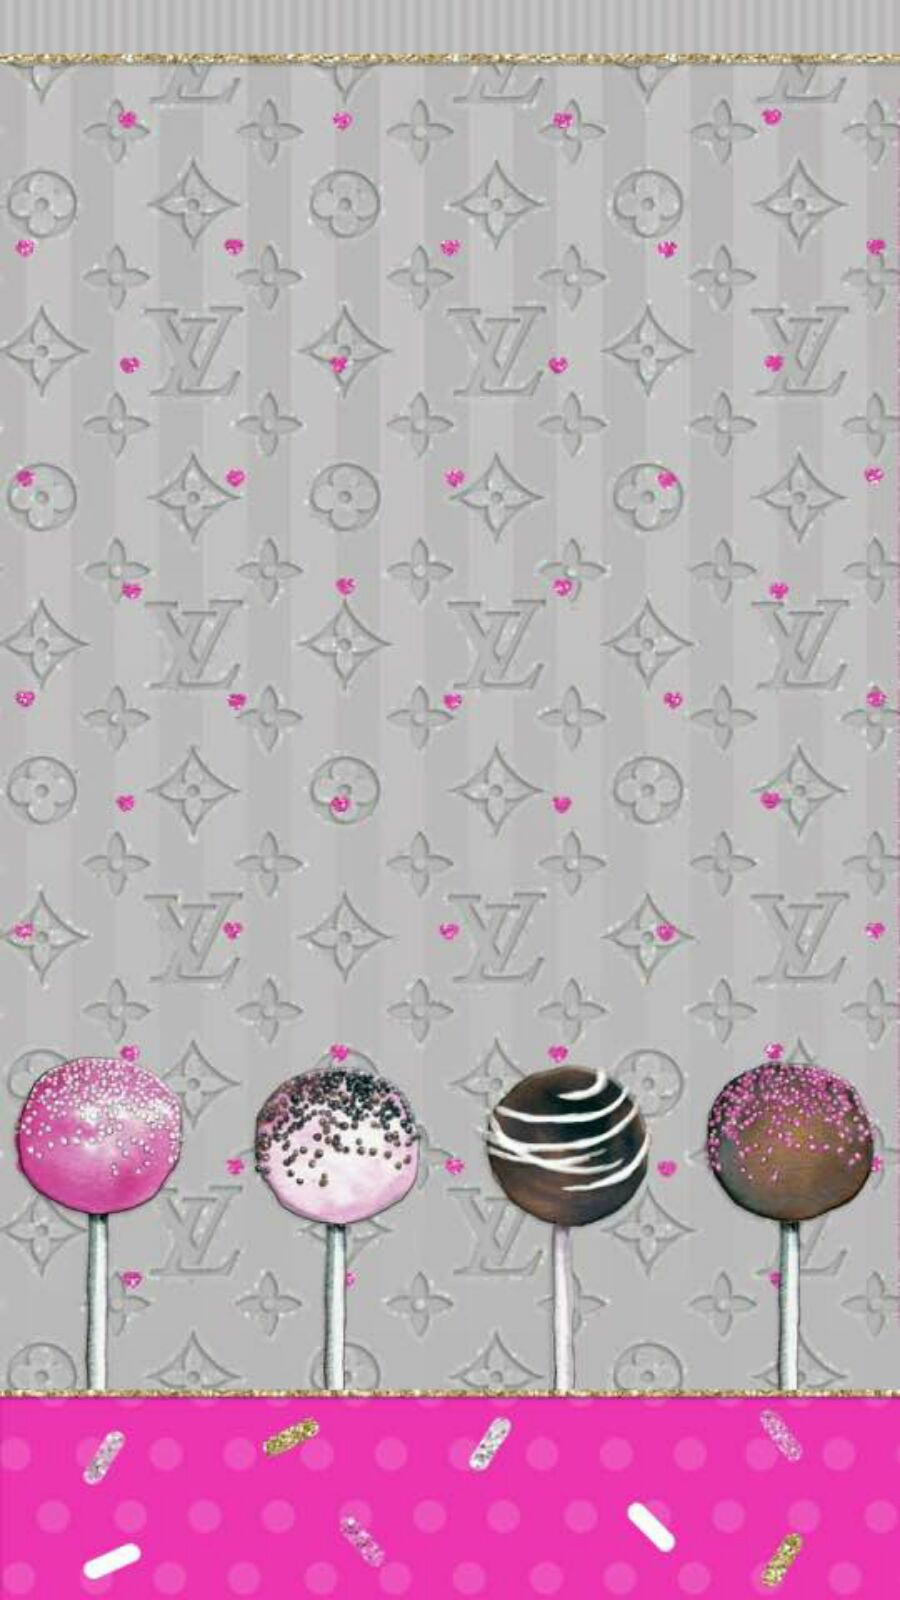 Beautiful Wallpaper Hello Kitty Cupcake - e14b84077925fa6e9300ac1c4c4ff5d6  Graphic_49176.jpg